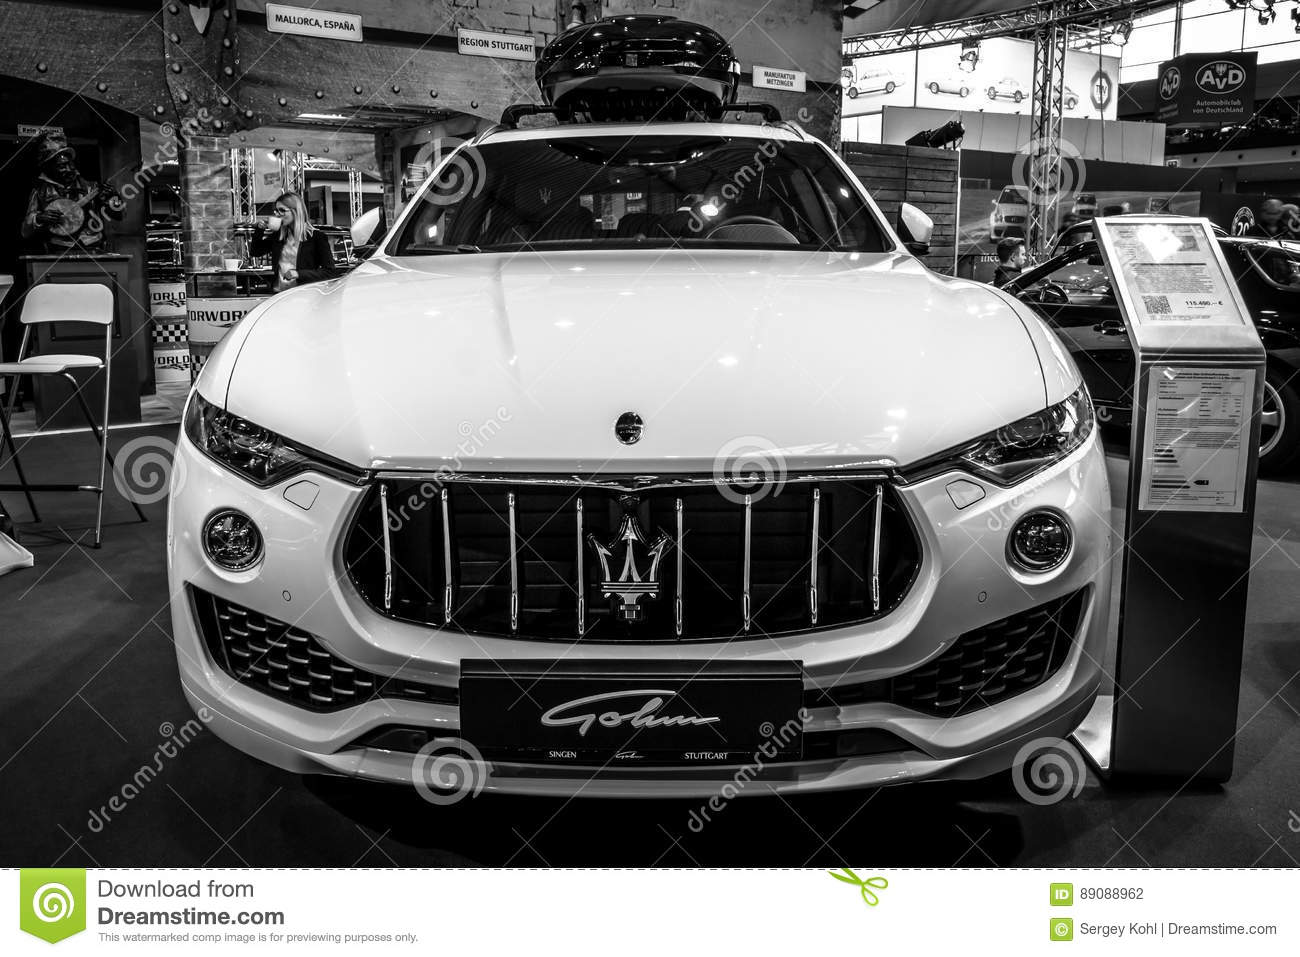 Mid Size Luxury Crossover Suv Maserati Levante S 2016 Editorial Photography Image Of Vehicle Modern 89088962